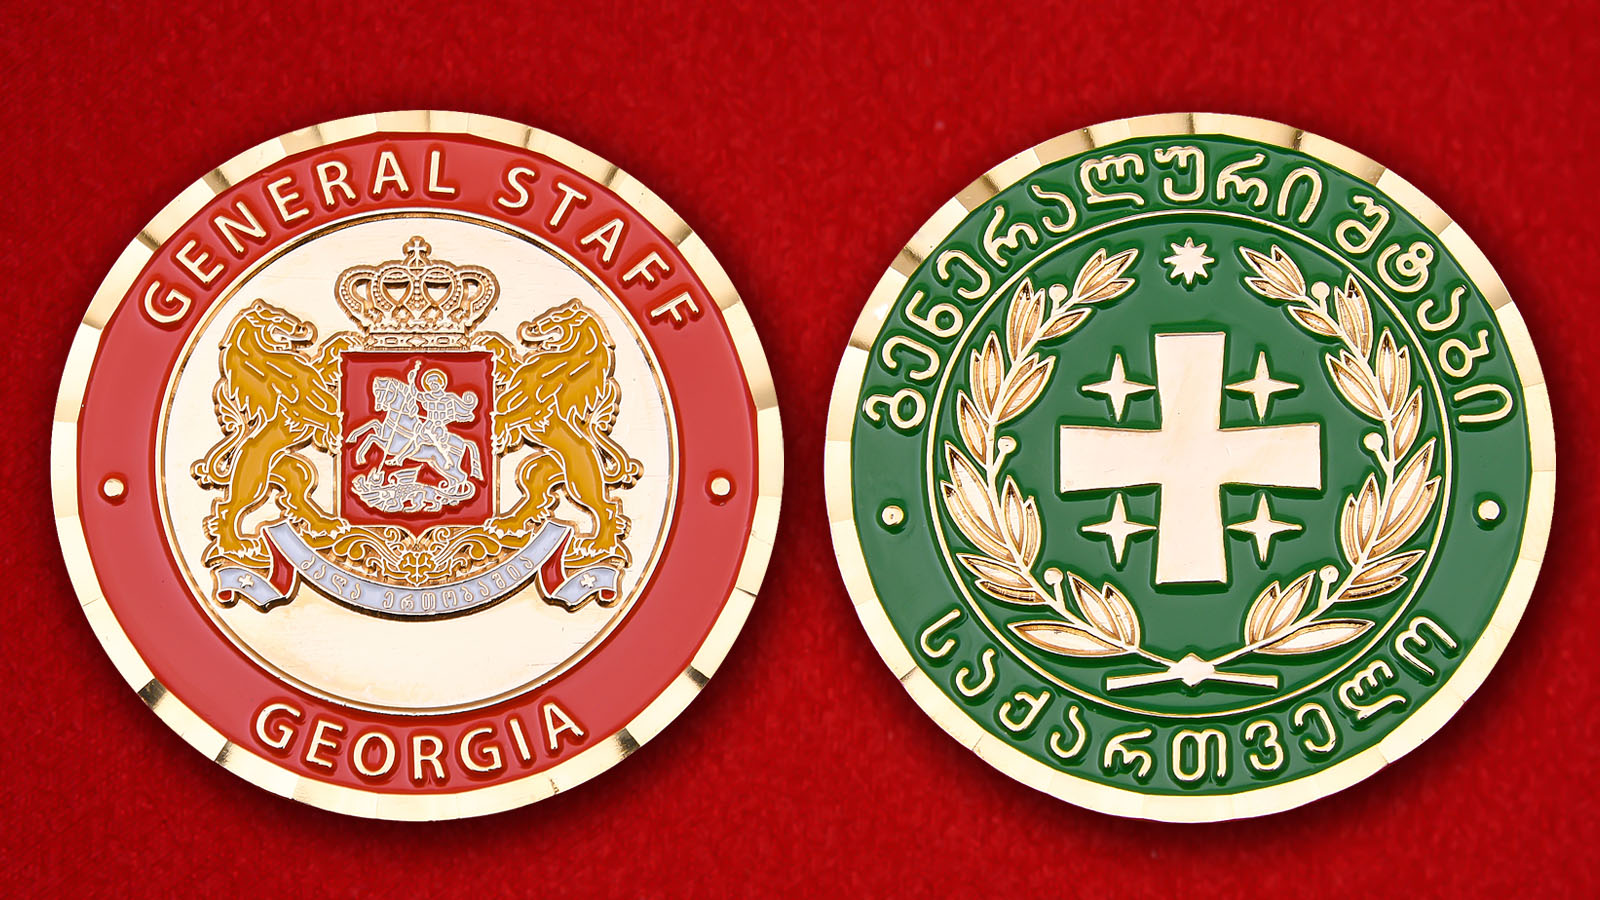 General Staff Of Georgia Challenge Coin